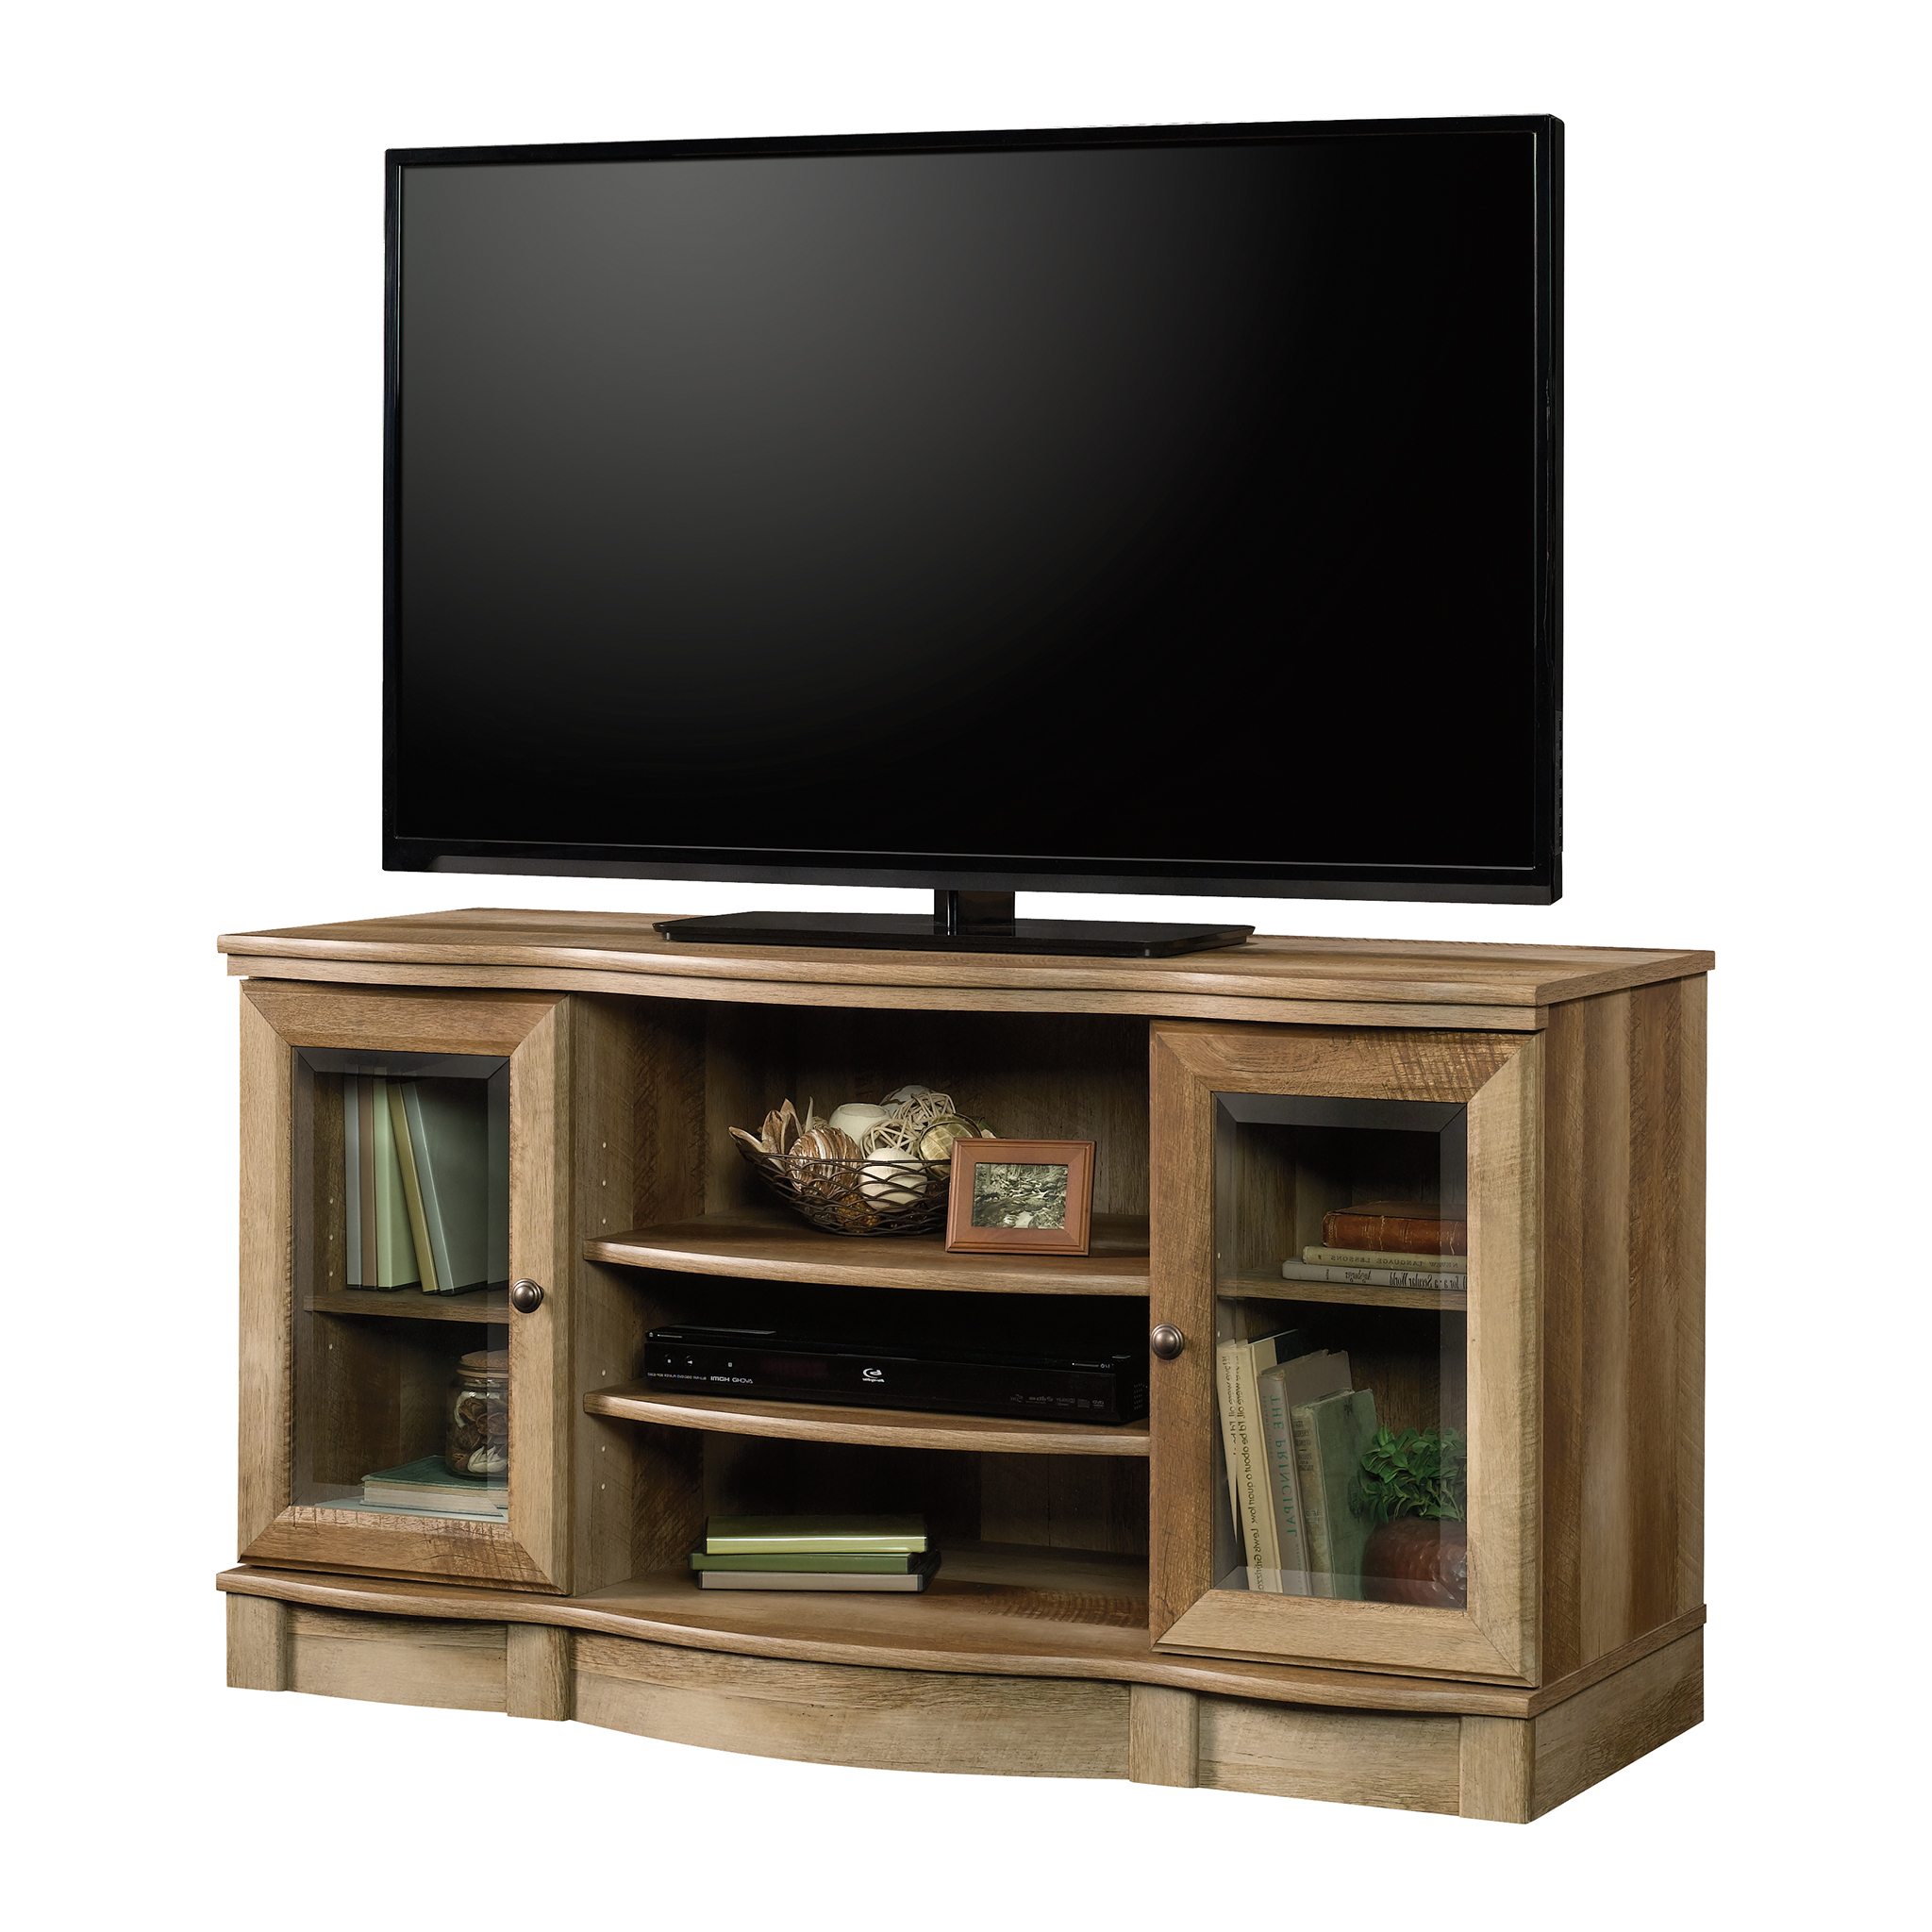 """Latest Sauder Regent Place Tv Stand For Tvs Up To 50"""", Craftsman With Regard To Leonid Tv Stands For Tvs Up To 50"""" (View 12 of 25)"""